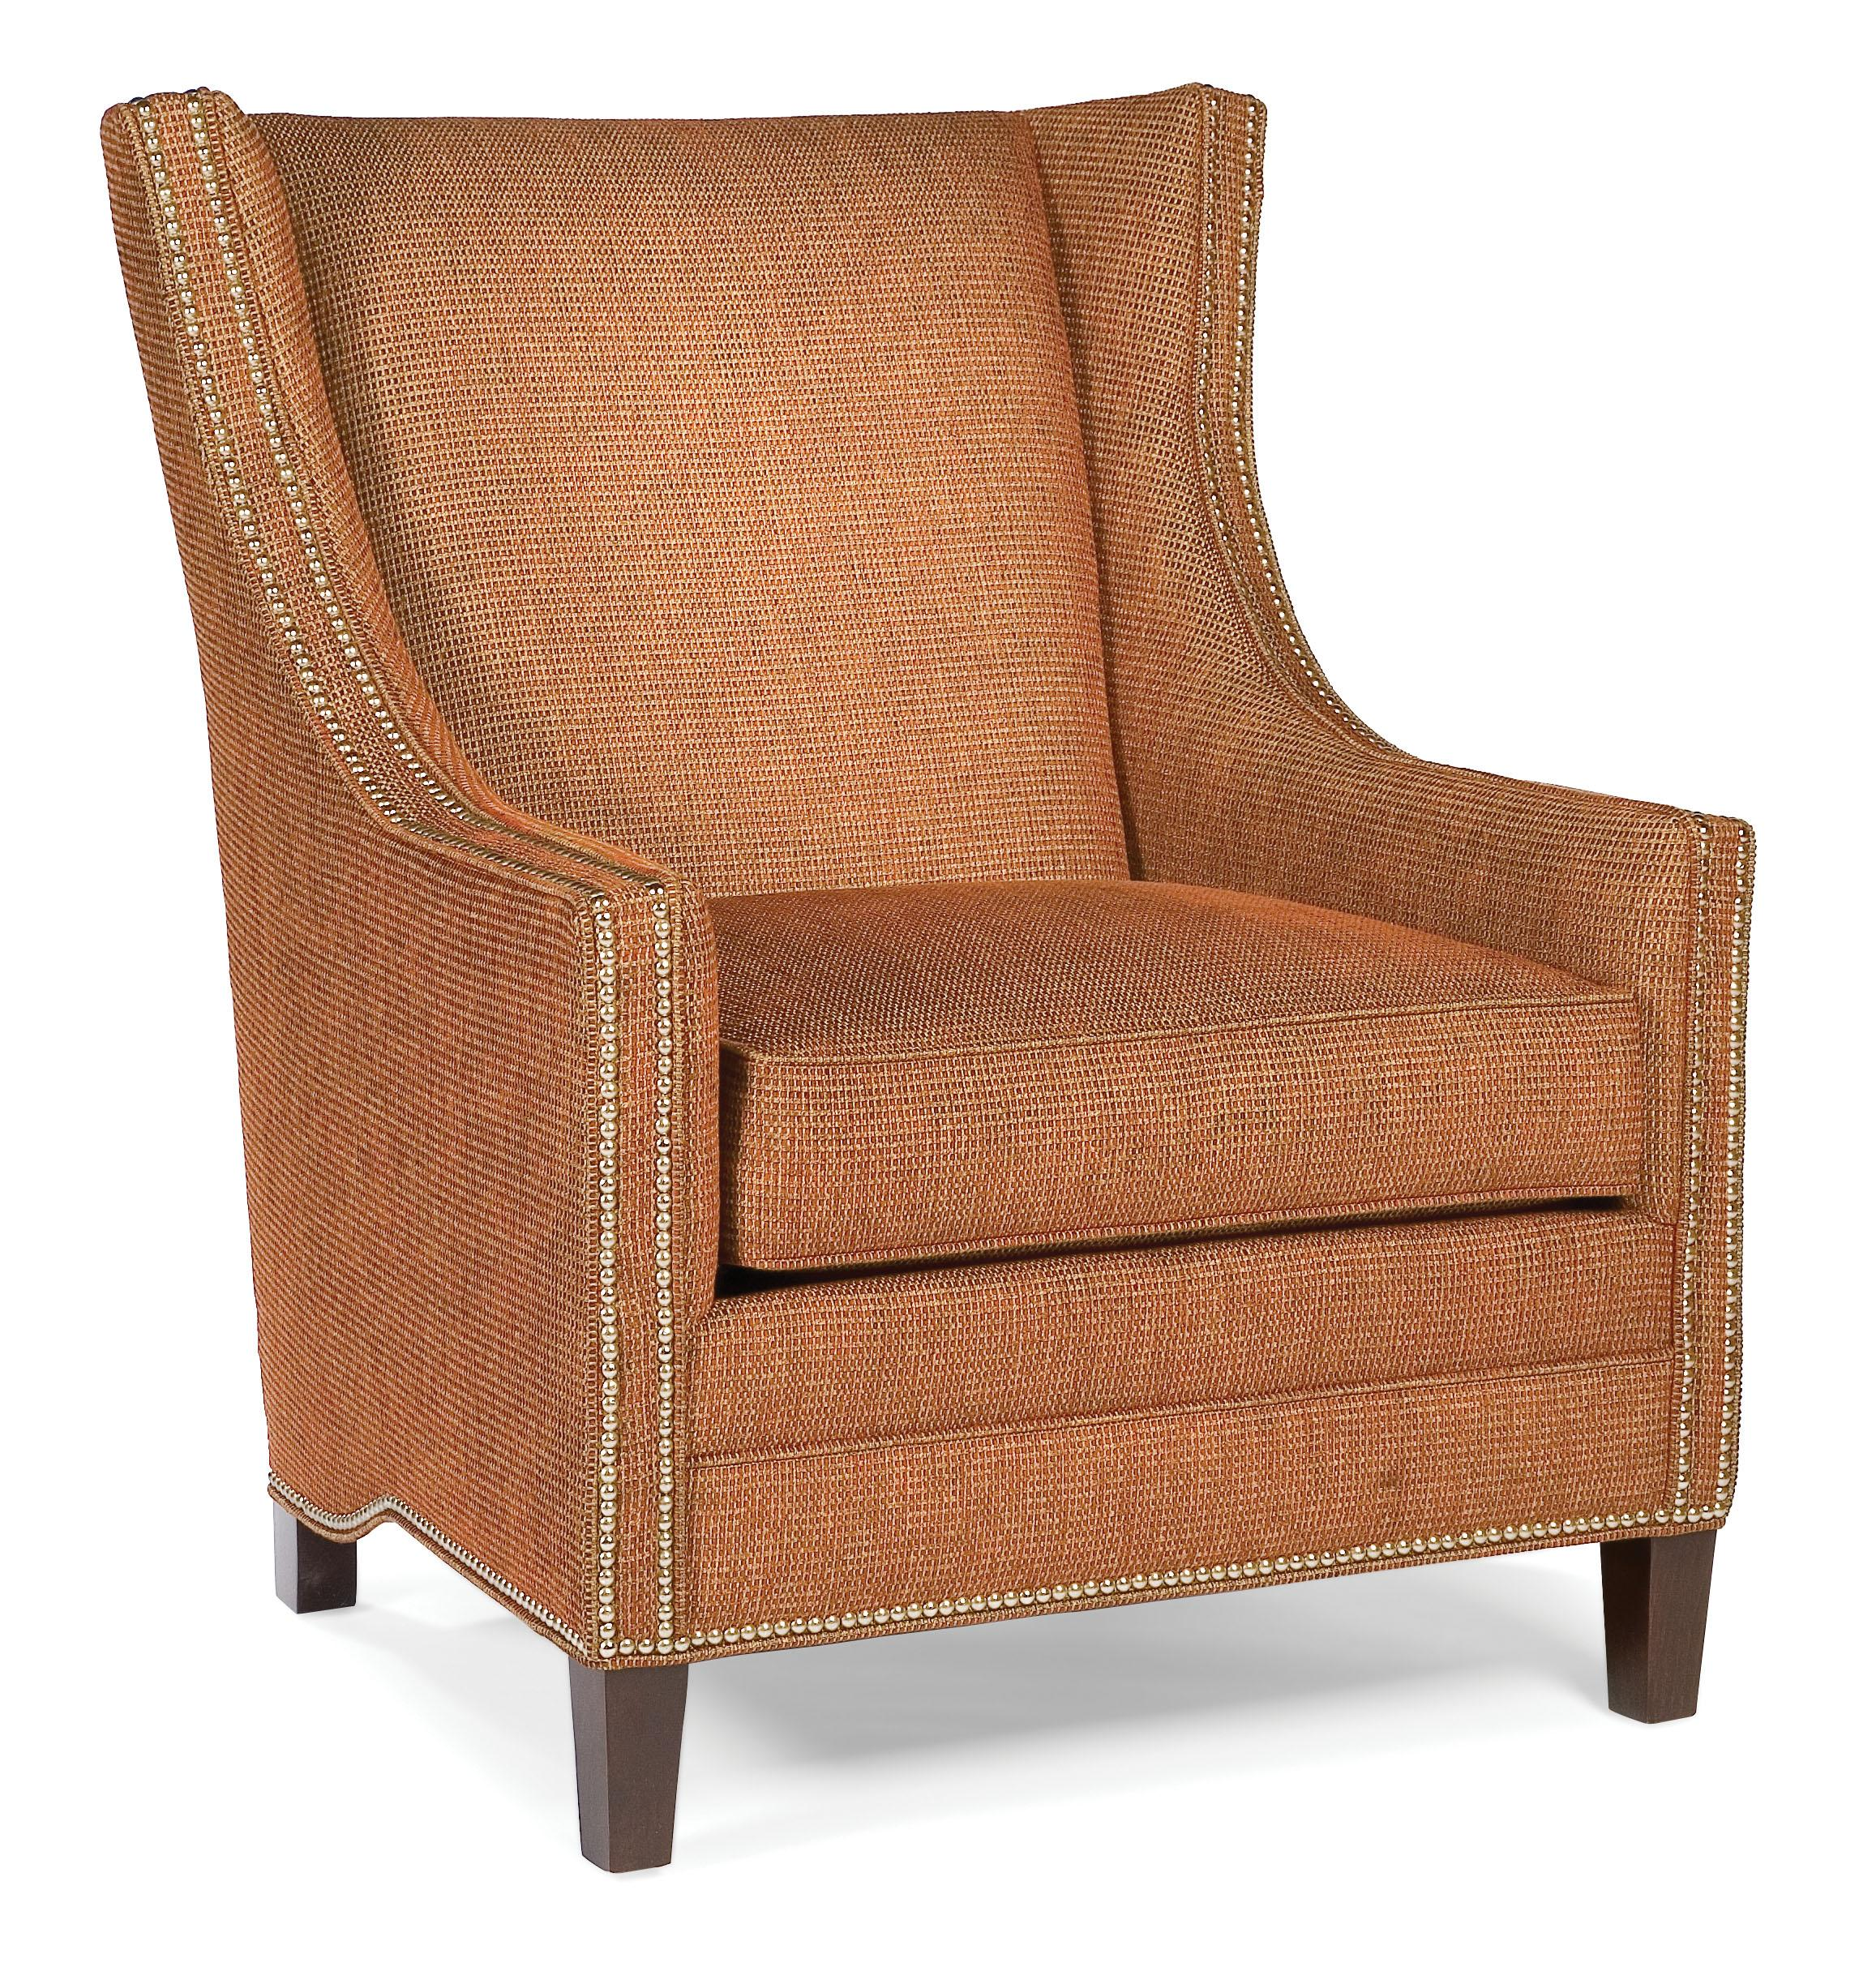 Fairfield Chairs Upholstered Lounge Chair - Item Number: 5356-01